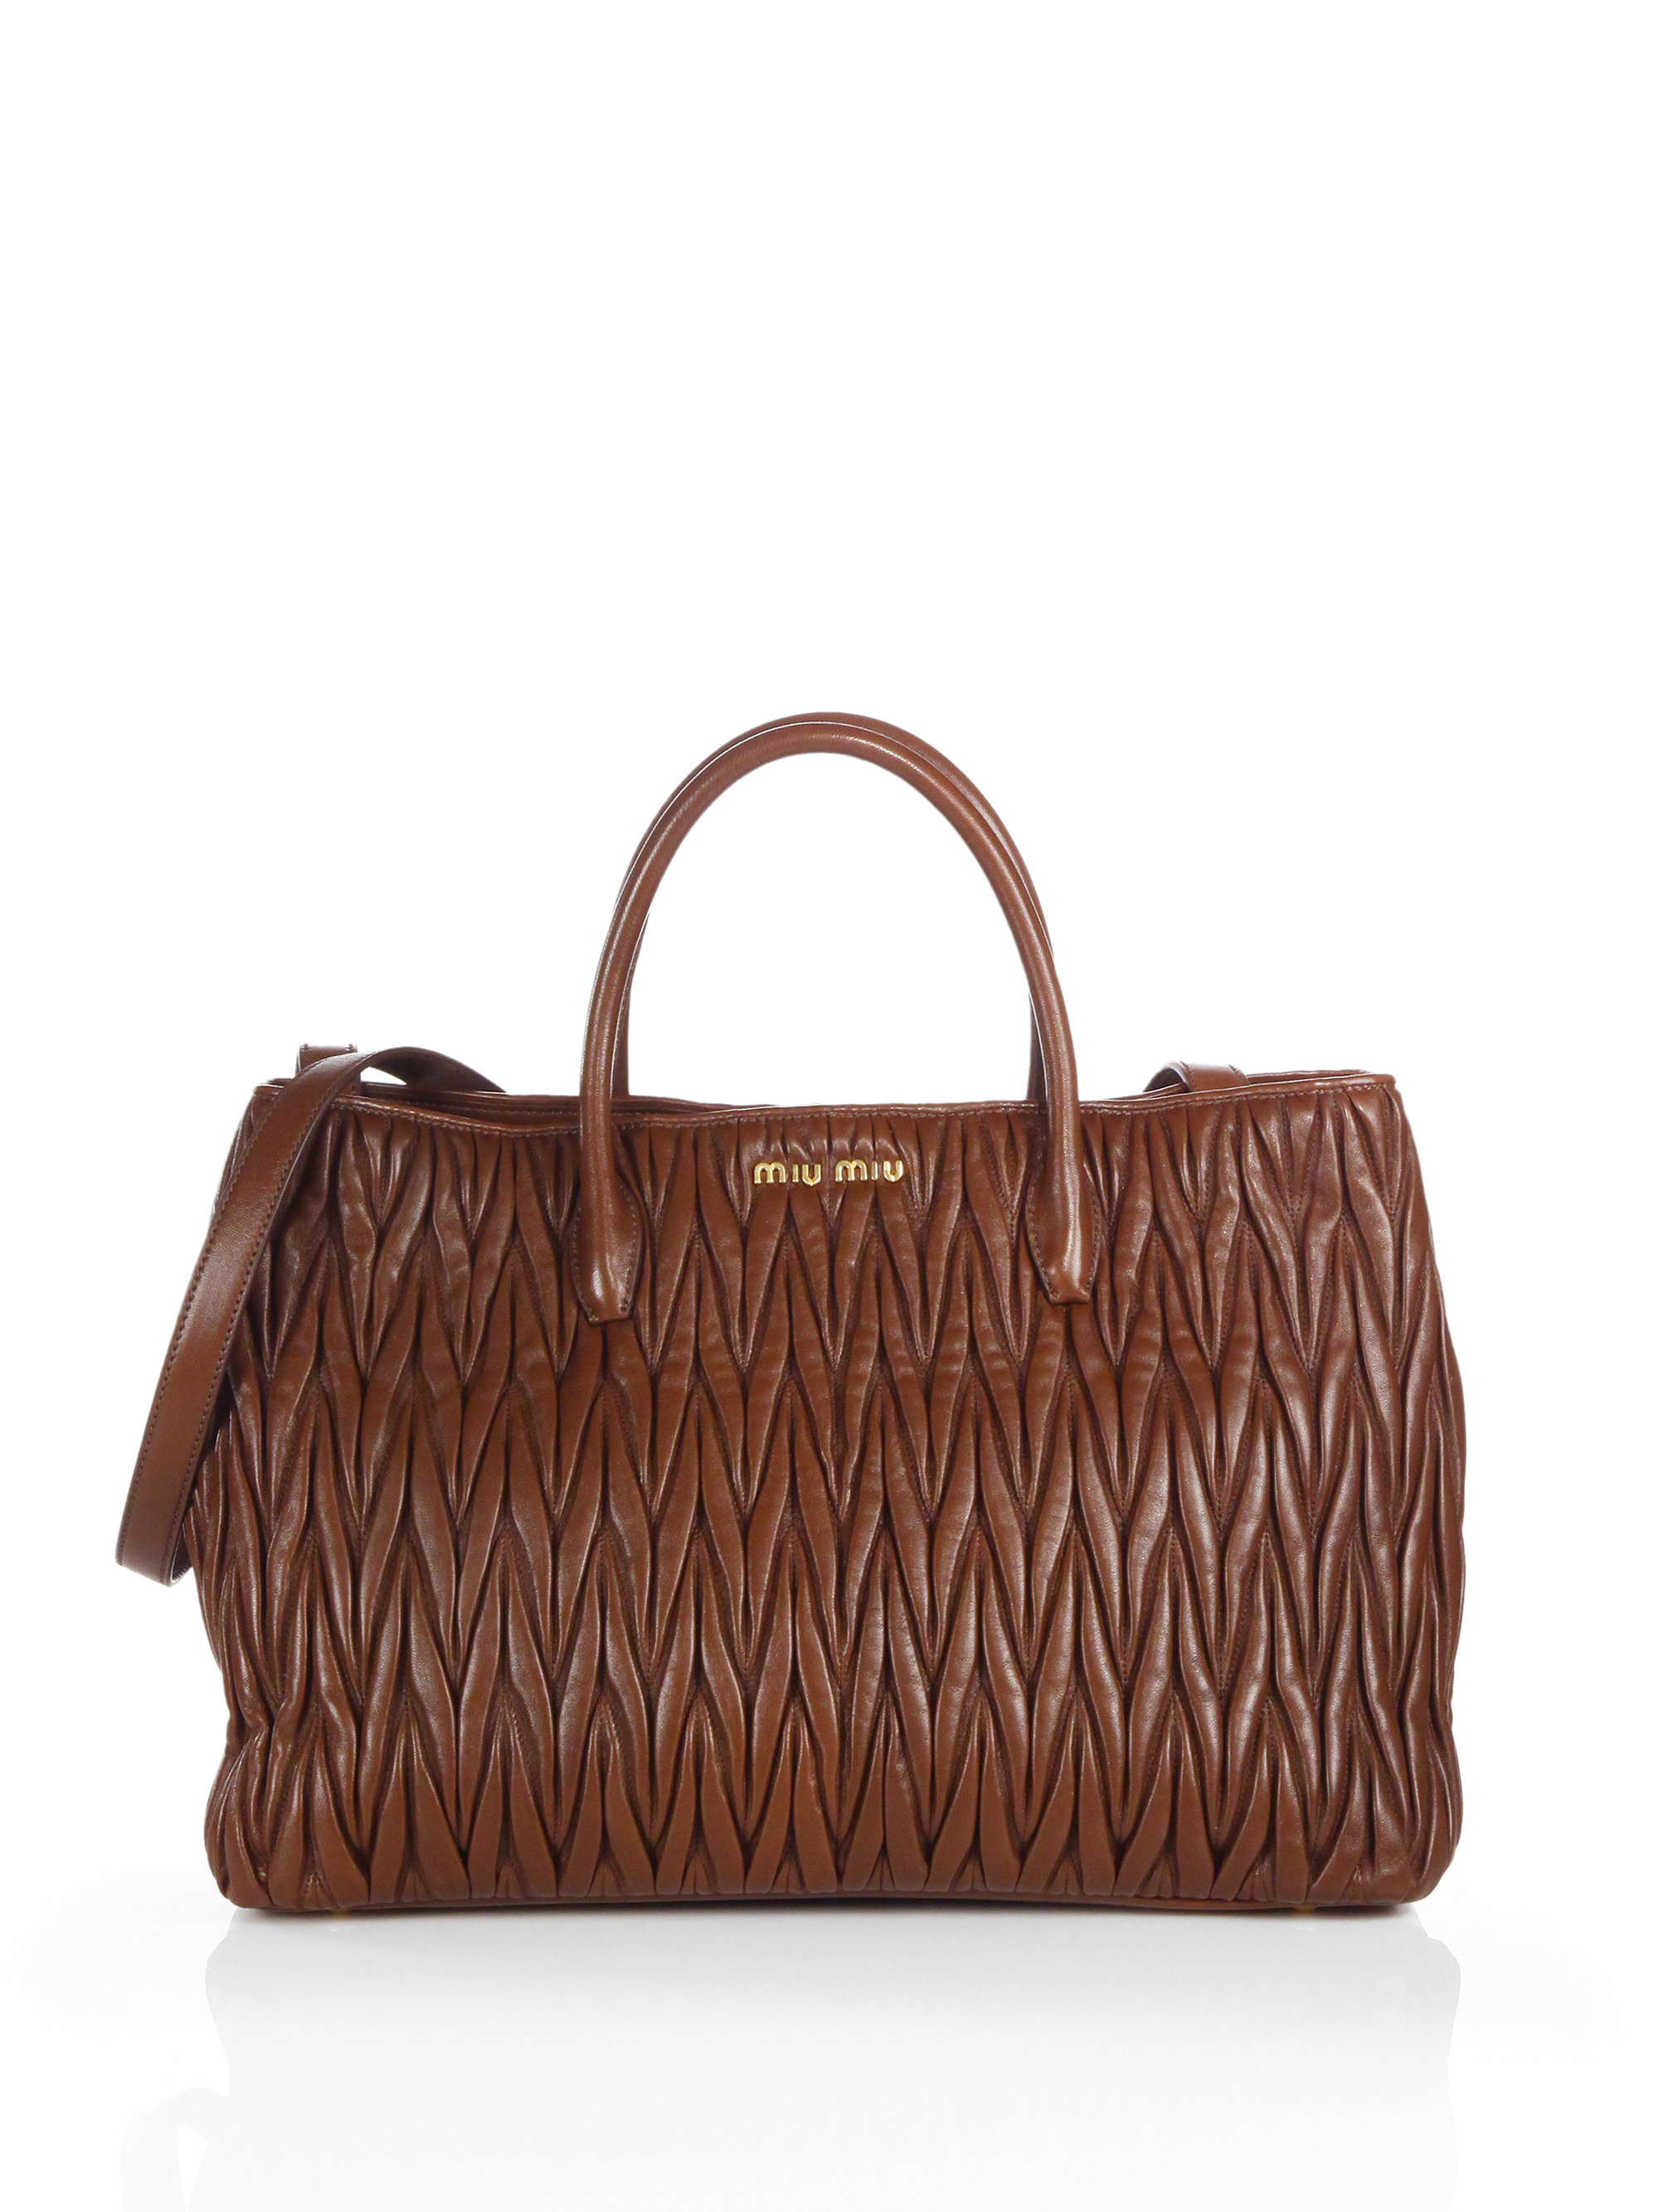 706588a79e Gallery. Previously sold at  Saks Fifth Avenue · Women s Miu ...